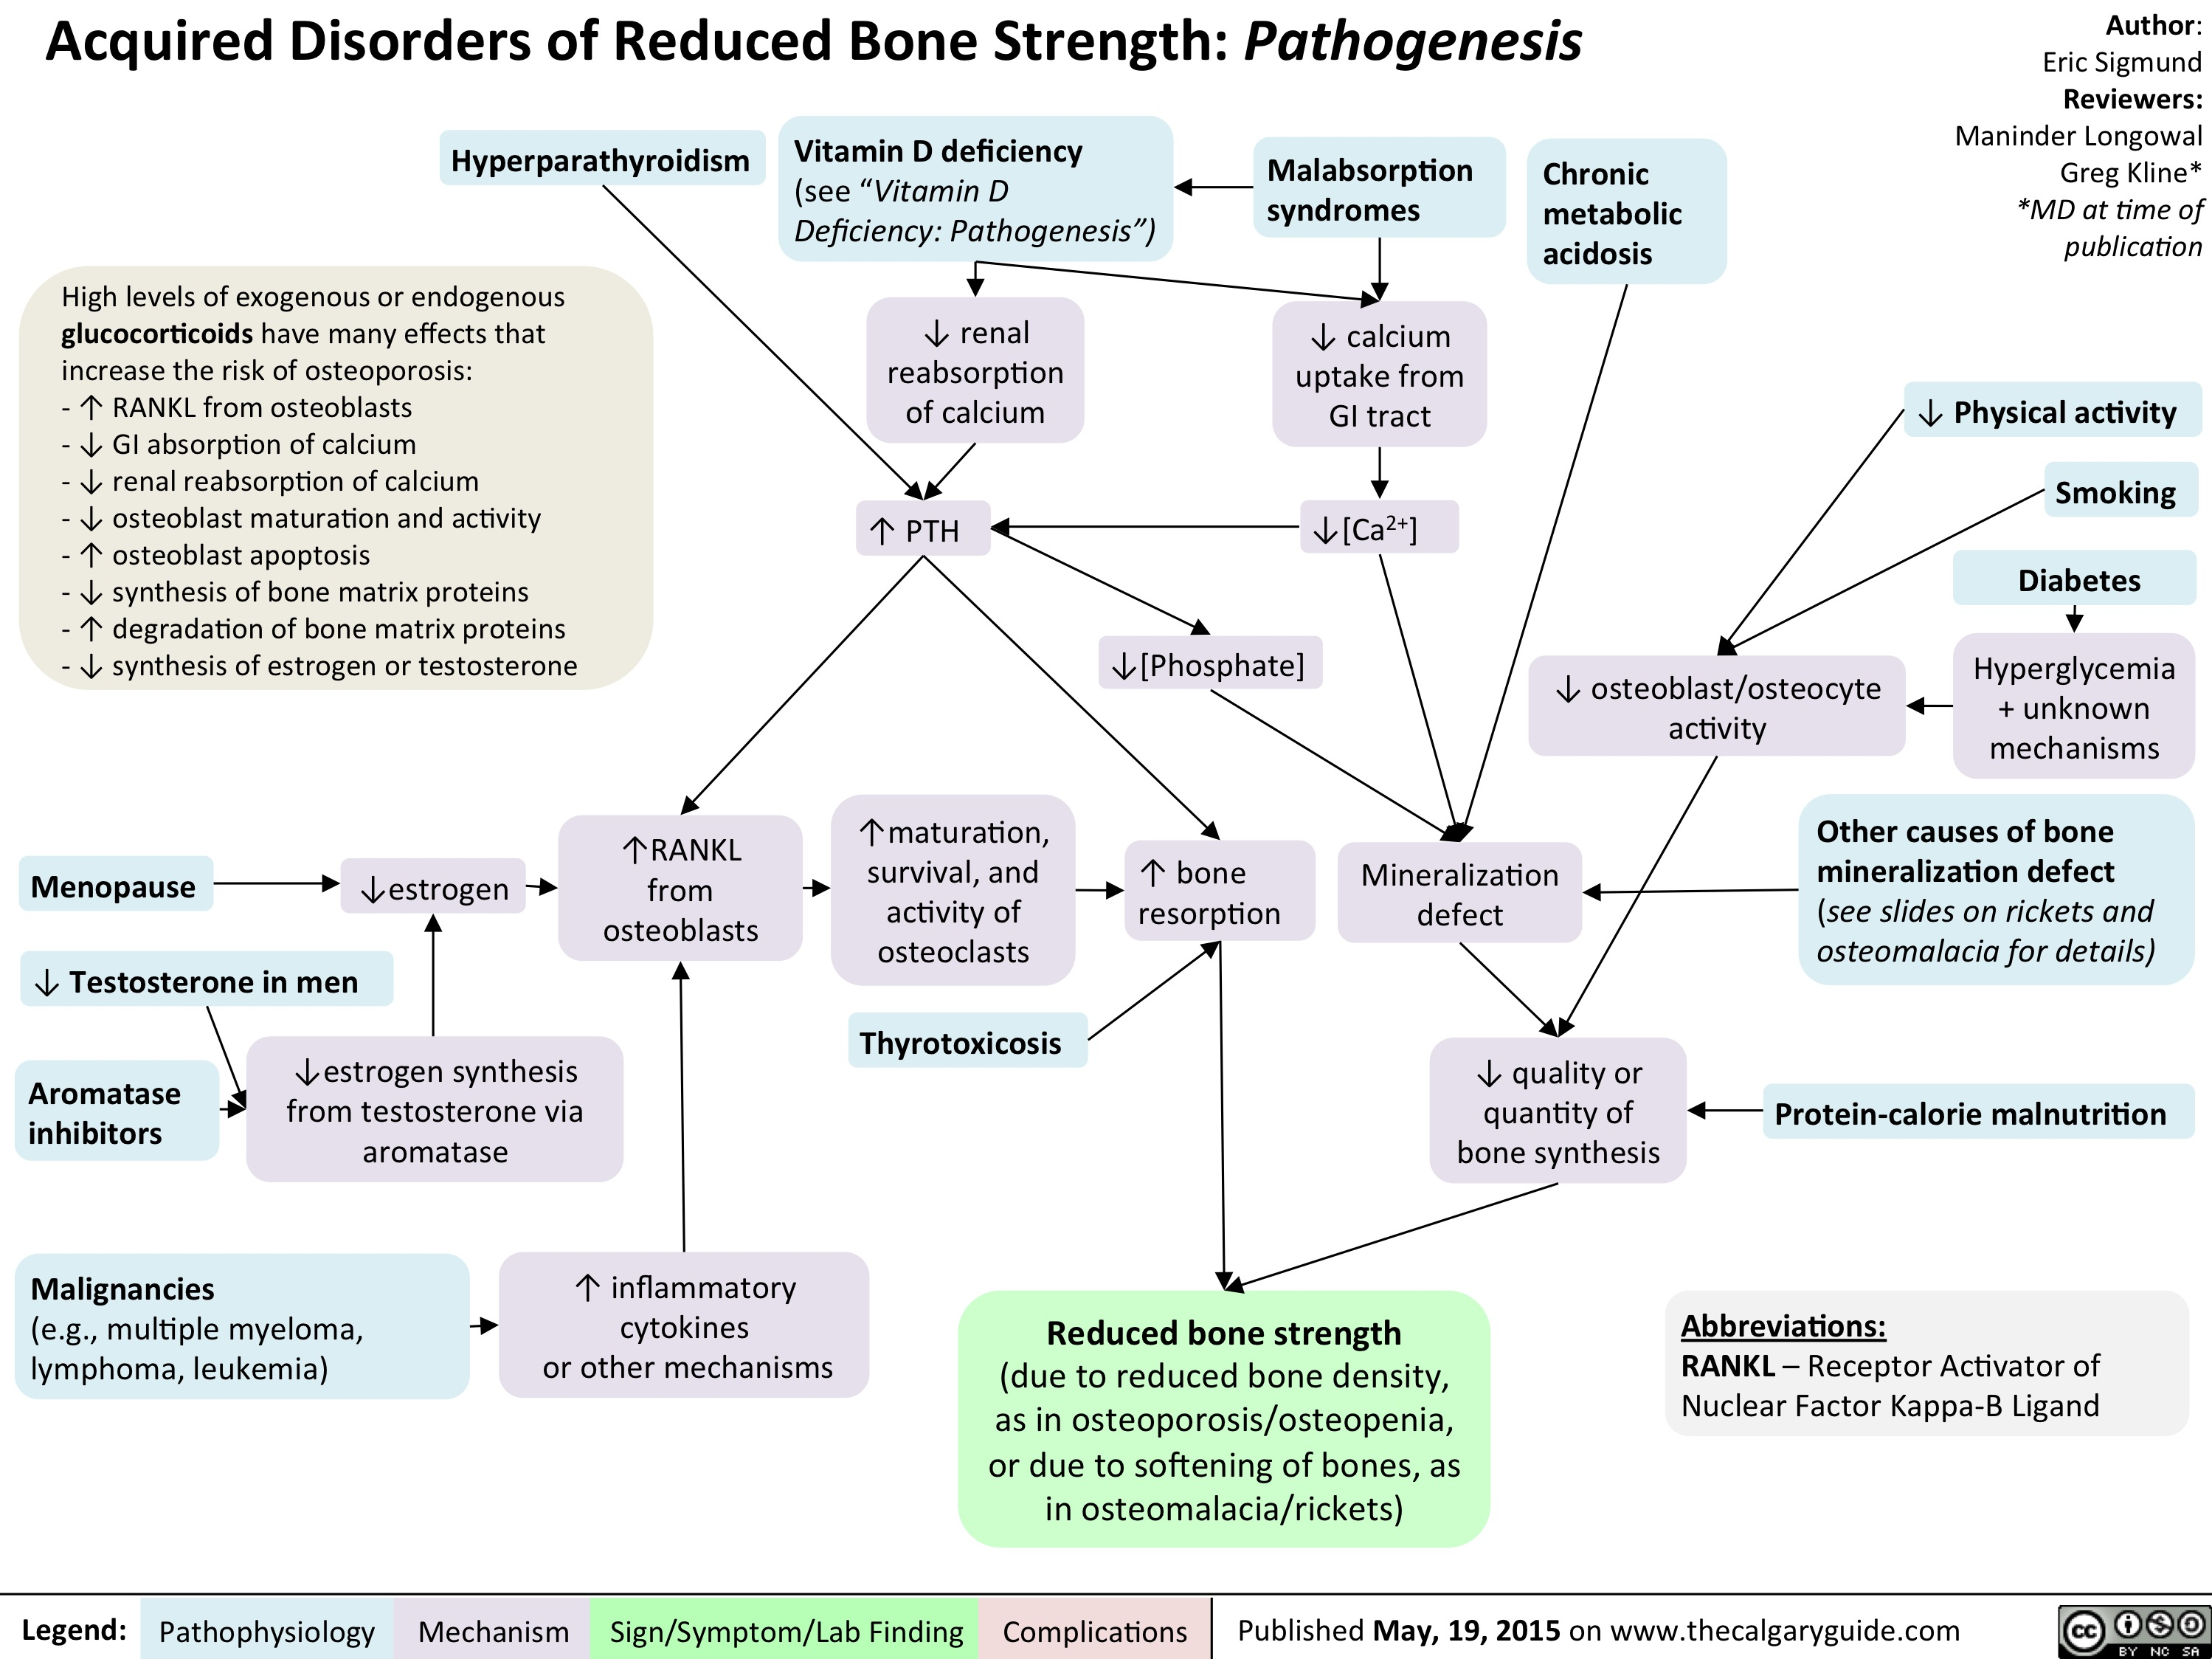 Acquired Disorders of Reduced Bone Strength - Pathogenesis